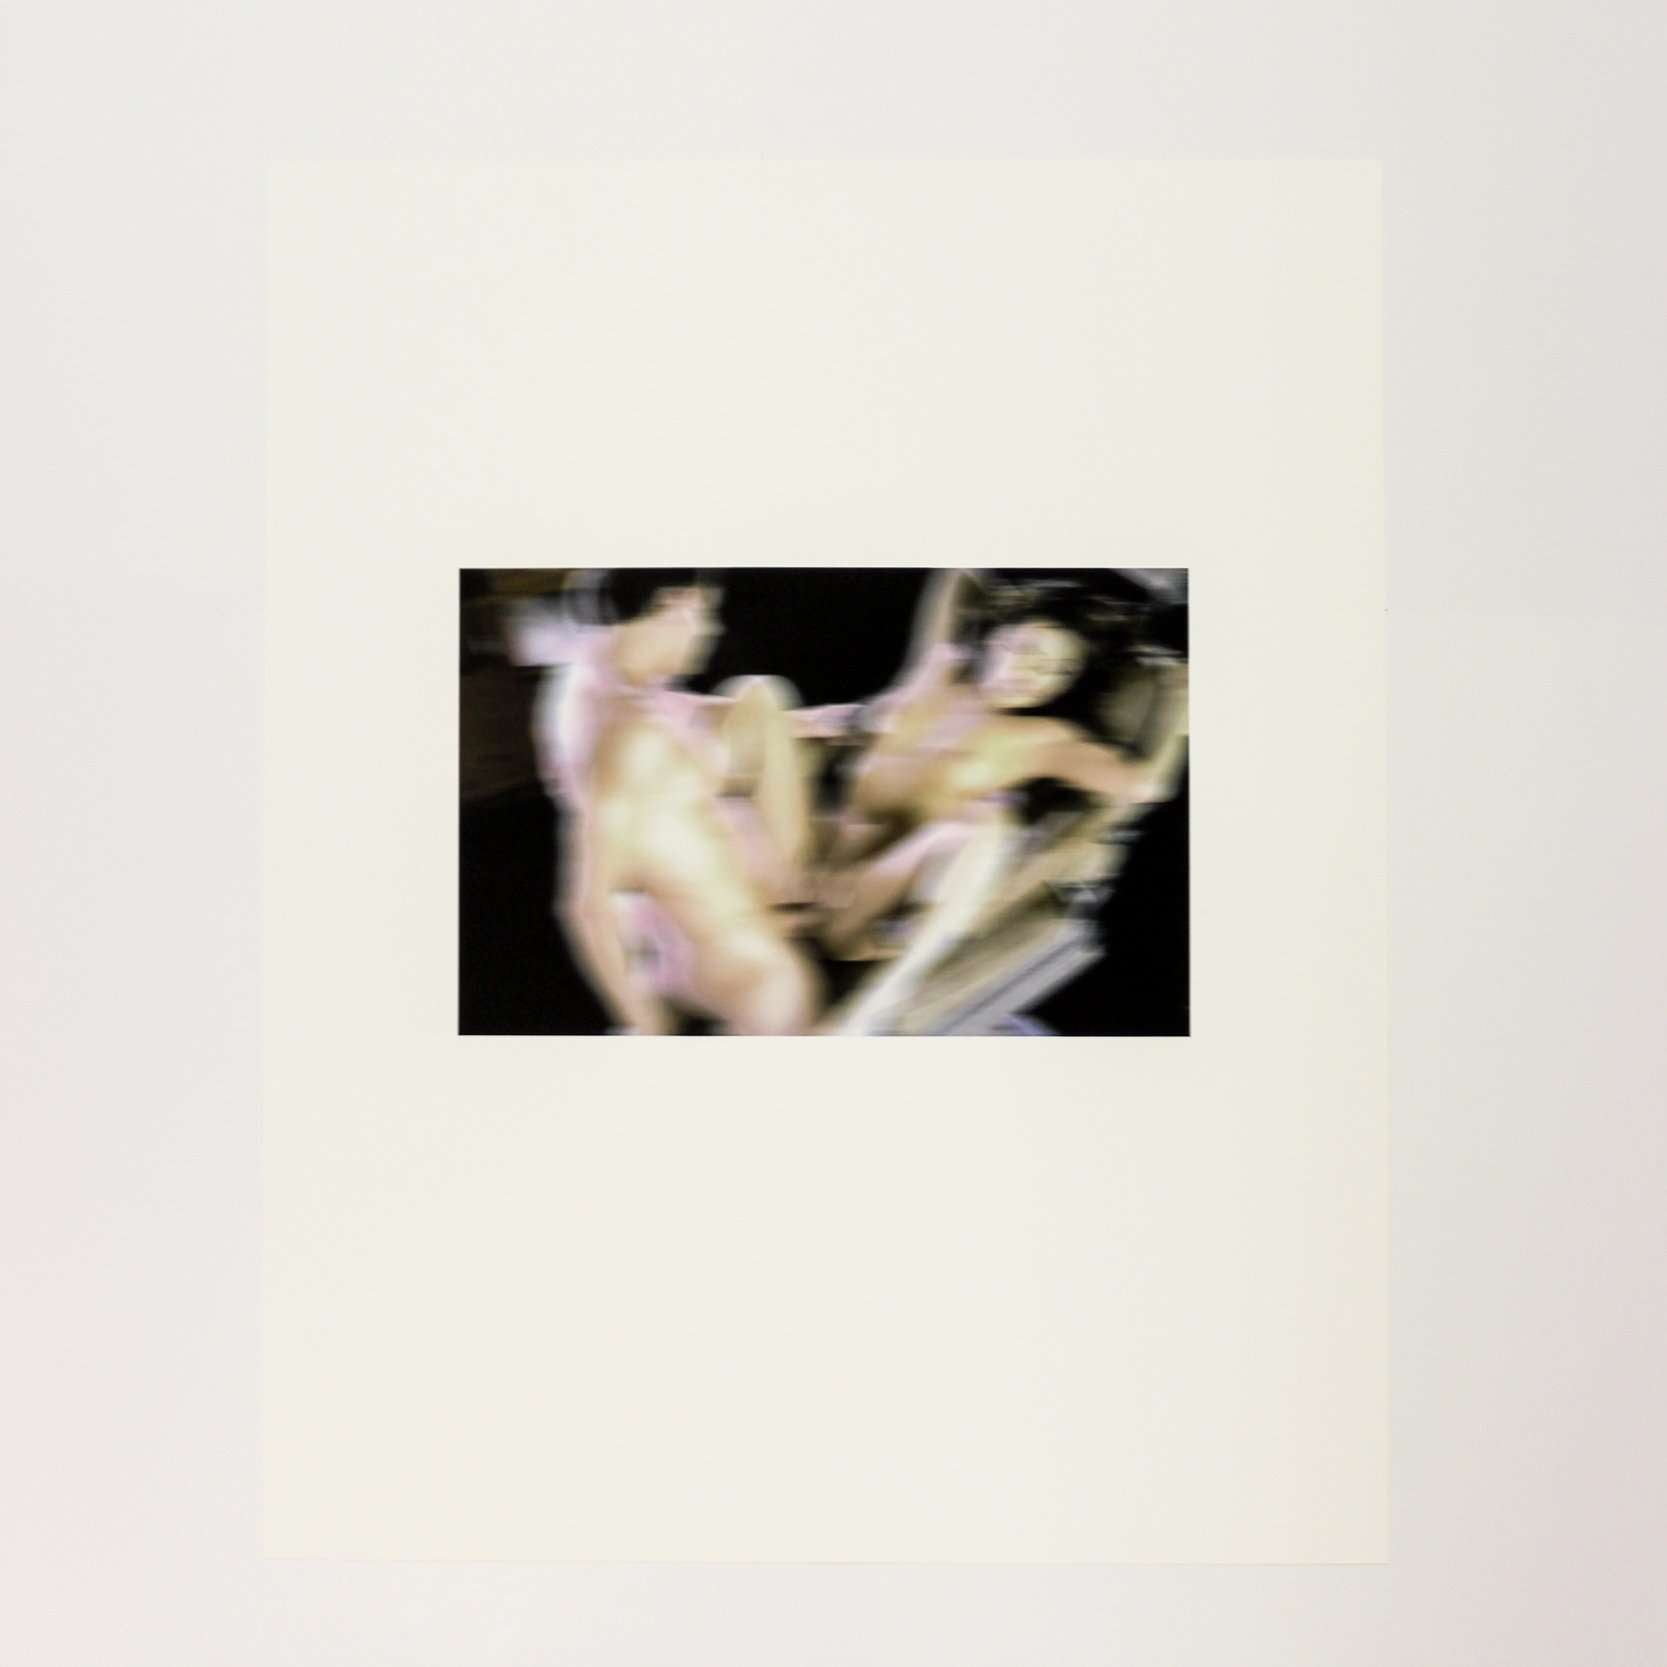 Thomas Ruff, Nudes em08, 2001 | Lougher Contemporary